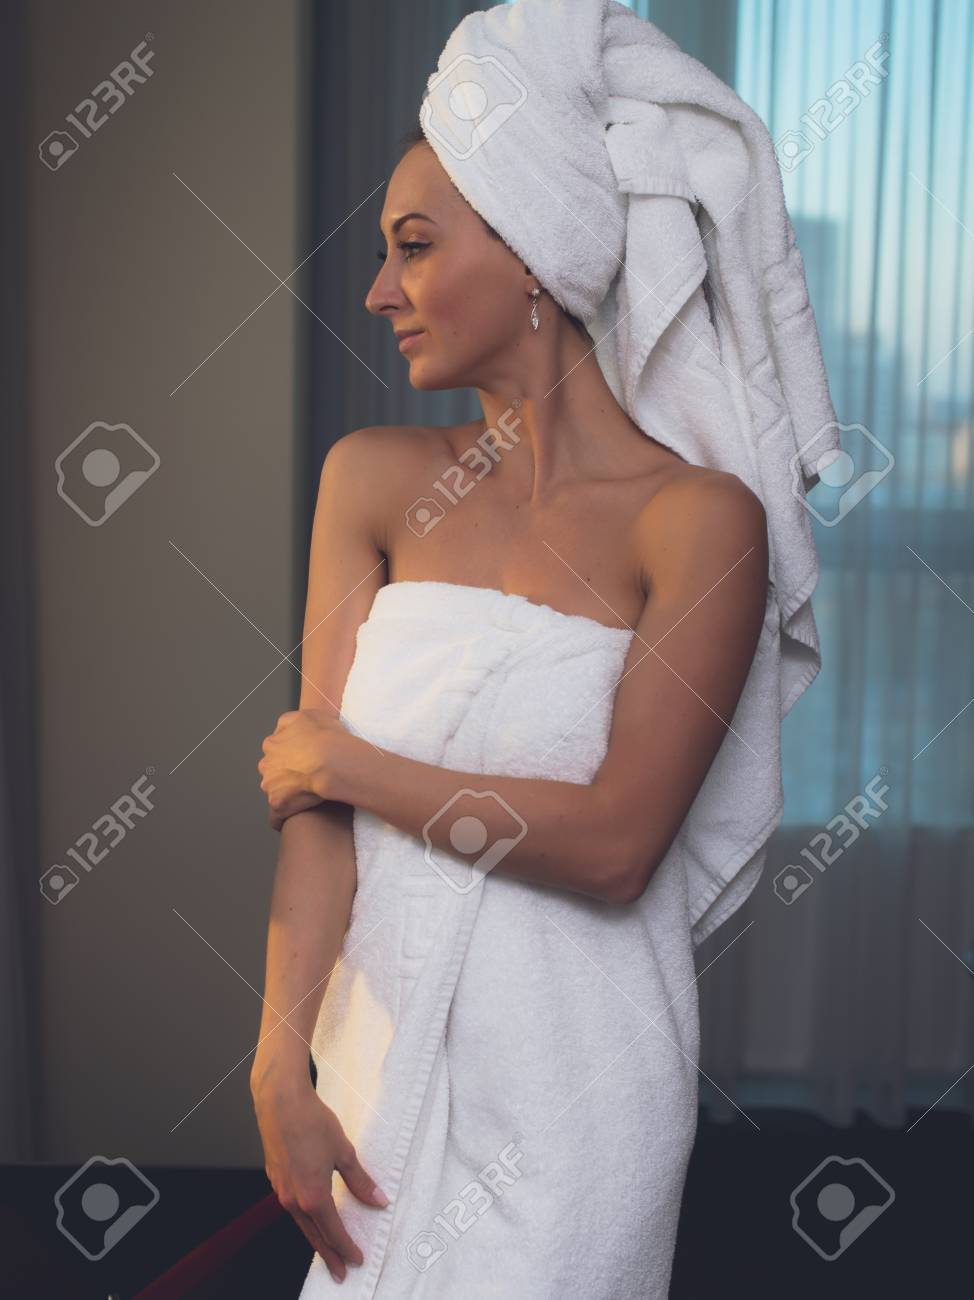 Naked woman with towel on her head and body after bath Stock Photo -  55593094